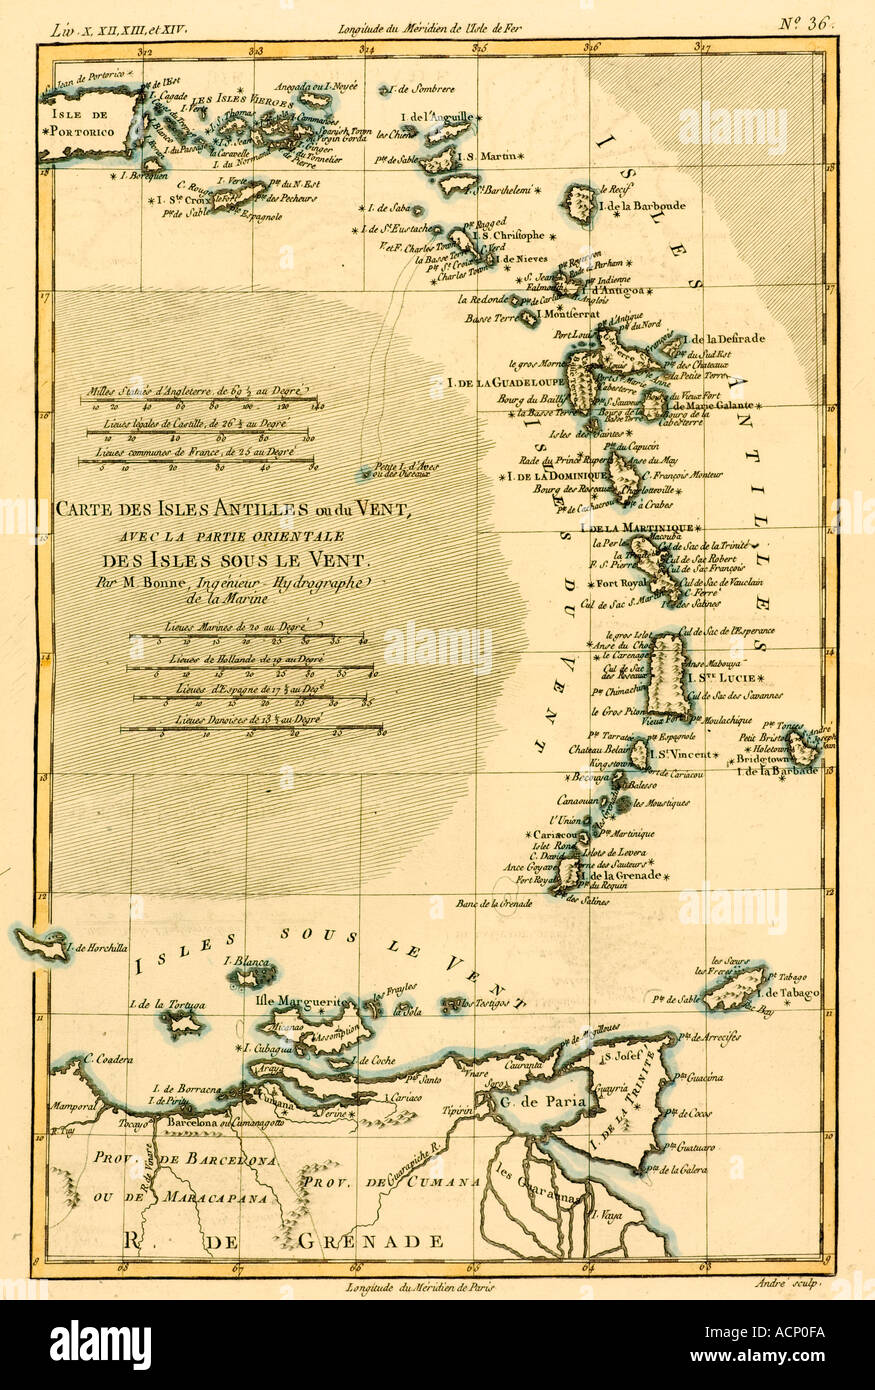 West Indies Map Stock Photos & West Indies Map Stock Images - Alamy